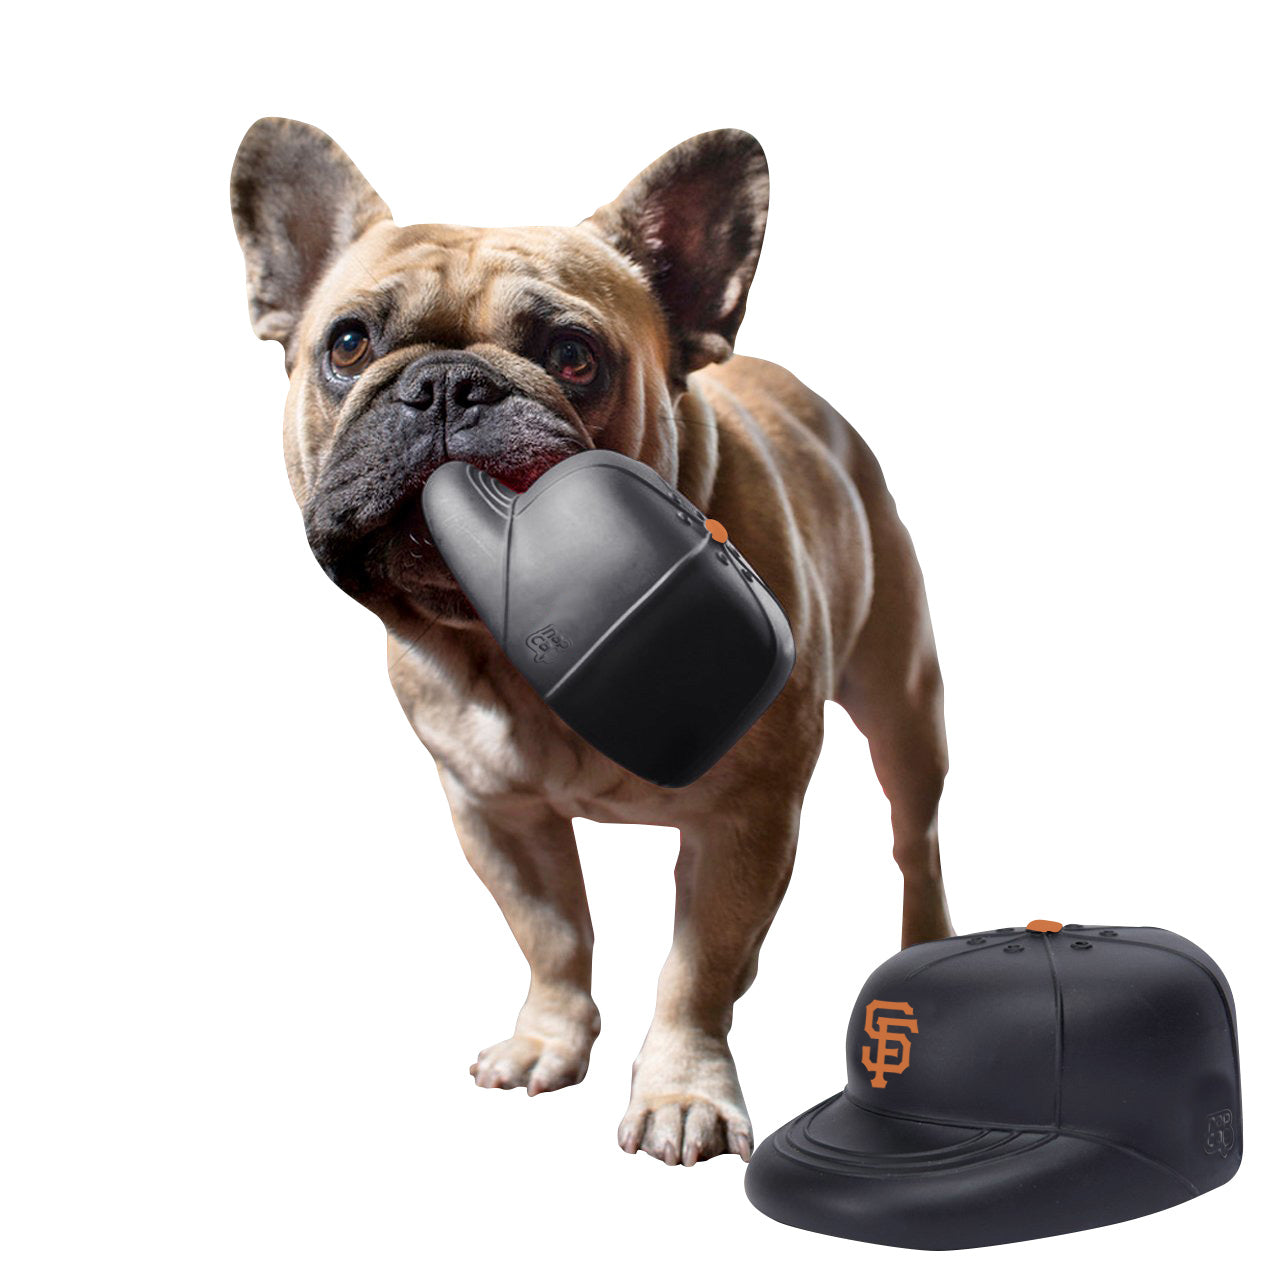 San Francisco Giants PlayCap Dog Chew Toy